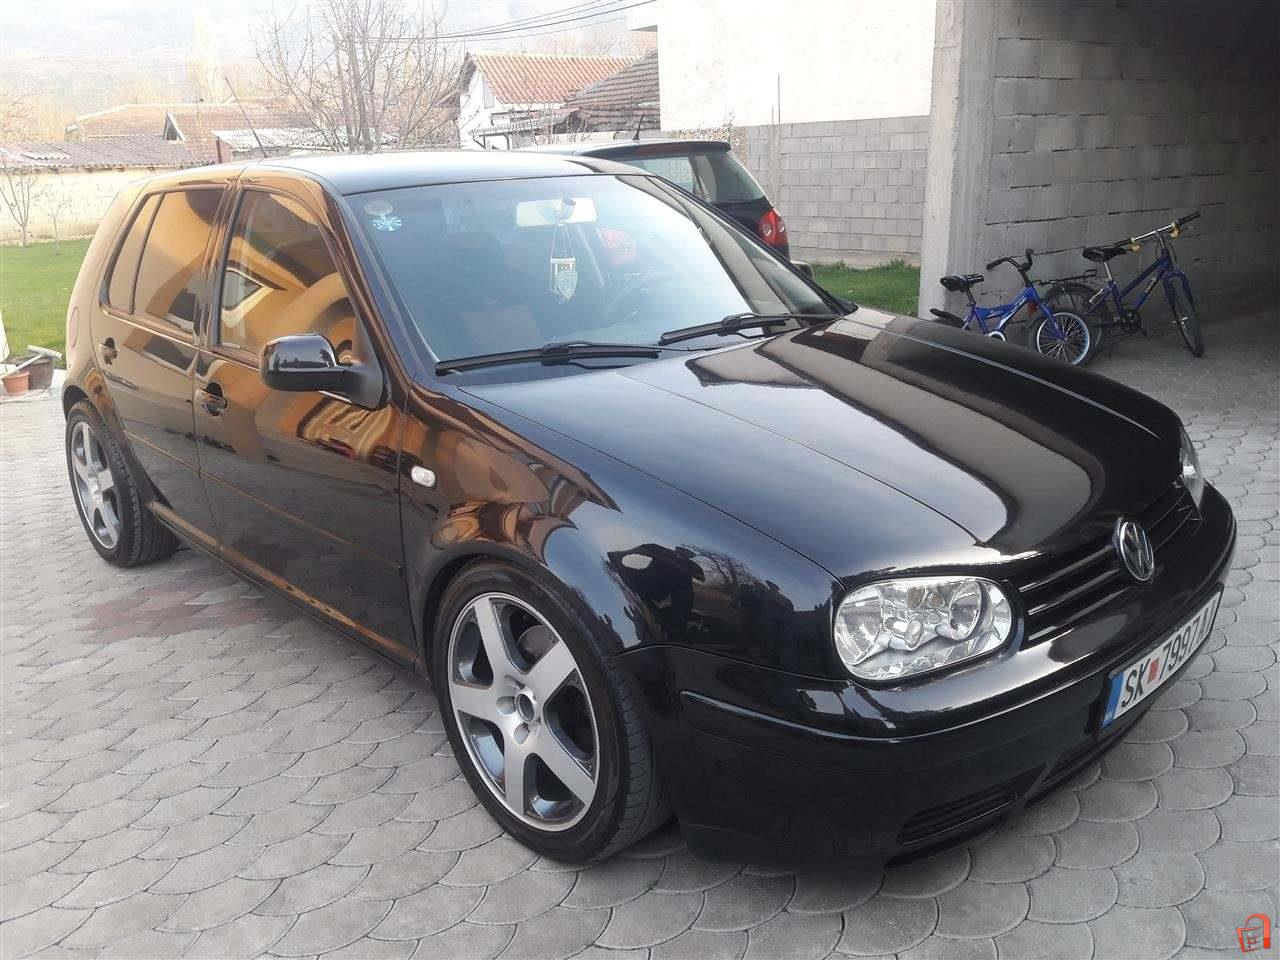 ad vw golf 4 1 9 tdi gti for sale skopje saraj vehicles automobiles vw. Black Bedroom Furniture Sets. Home Design Ideas